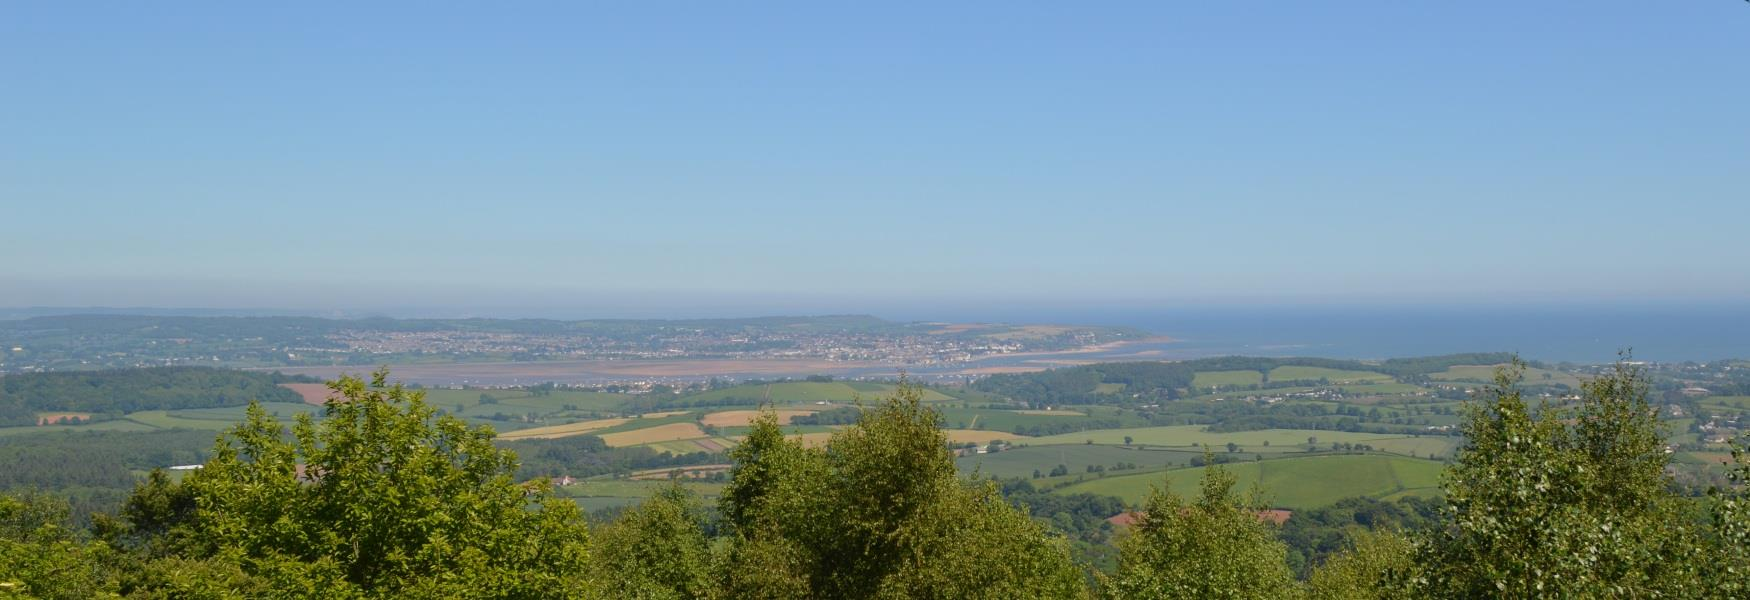 Mamhead view towards Exmouth